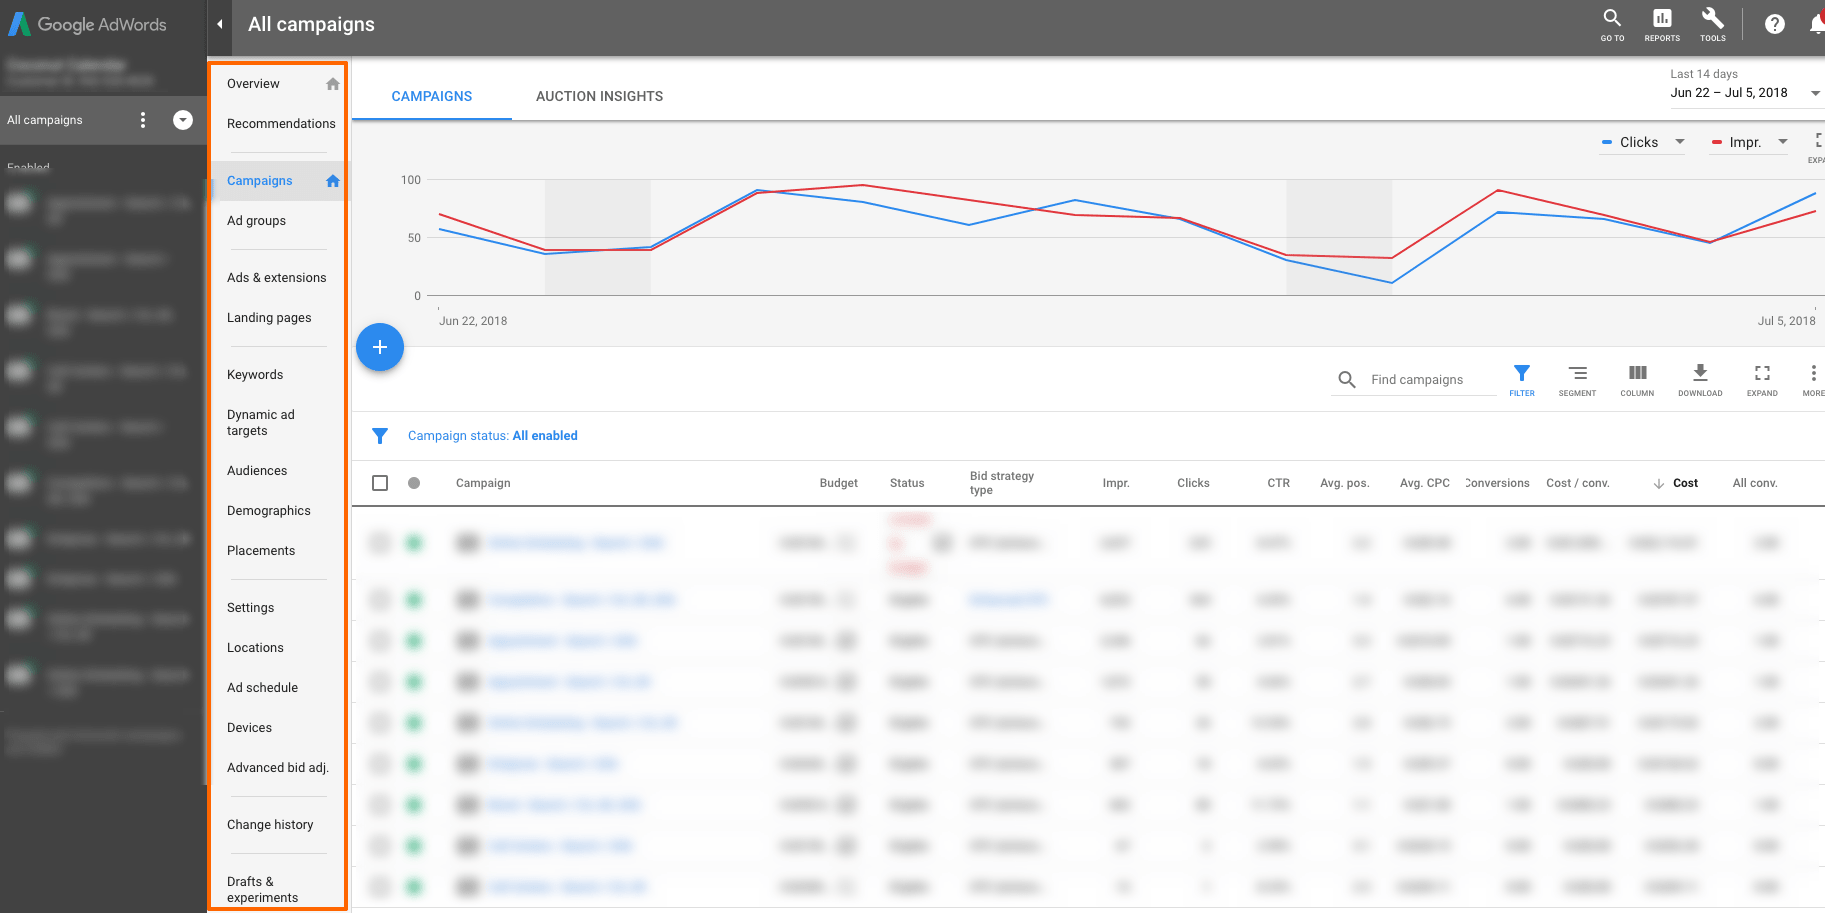 New Google AdWords Interface - Campaign Management